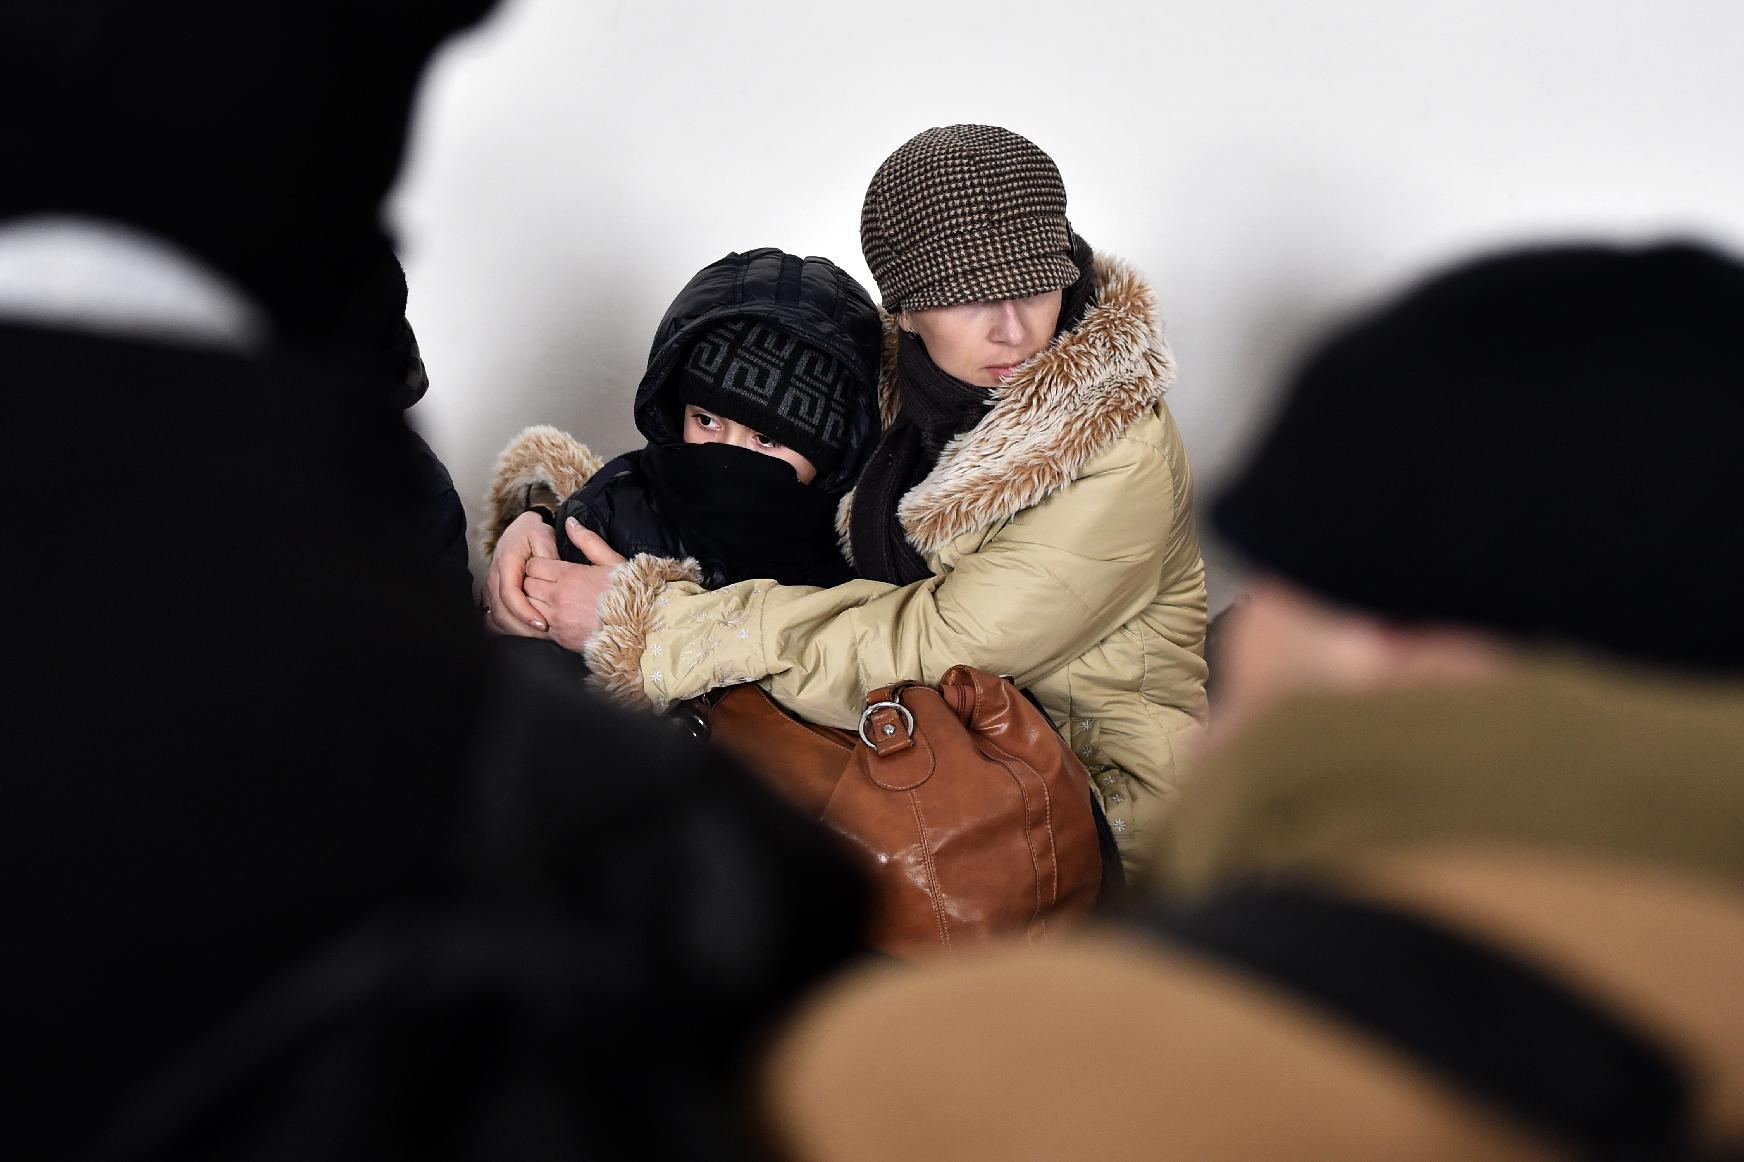 A Kosovo Albanian woman hugs her child at a police station near the northern Serbian city of Subotica close to the Hungarian border on February 9, 2015 (AFP Photo/Andrej Isakovic)